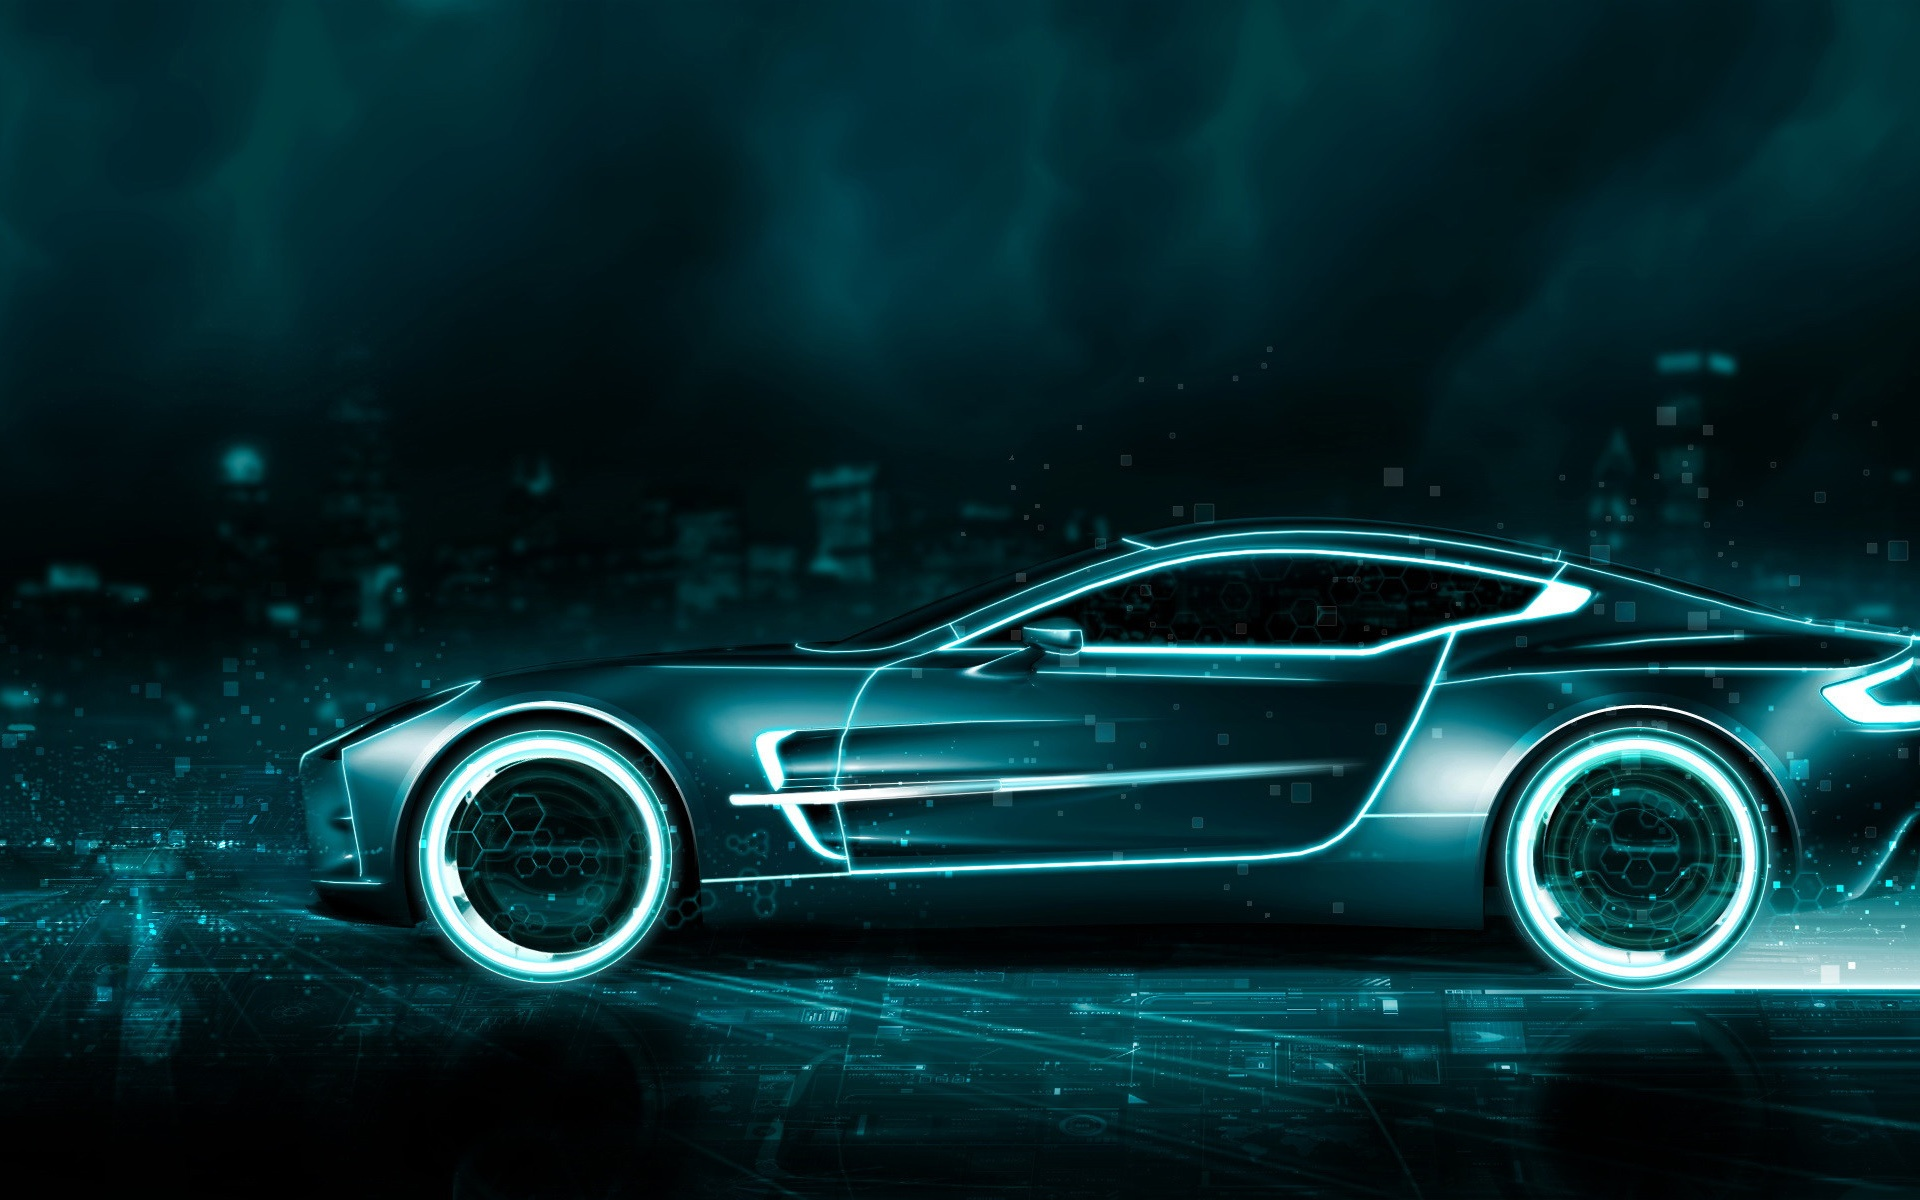 Free Tron Aston Martin phone wallpaper by kingdomhearts2498